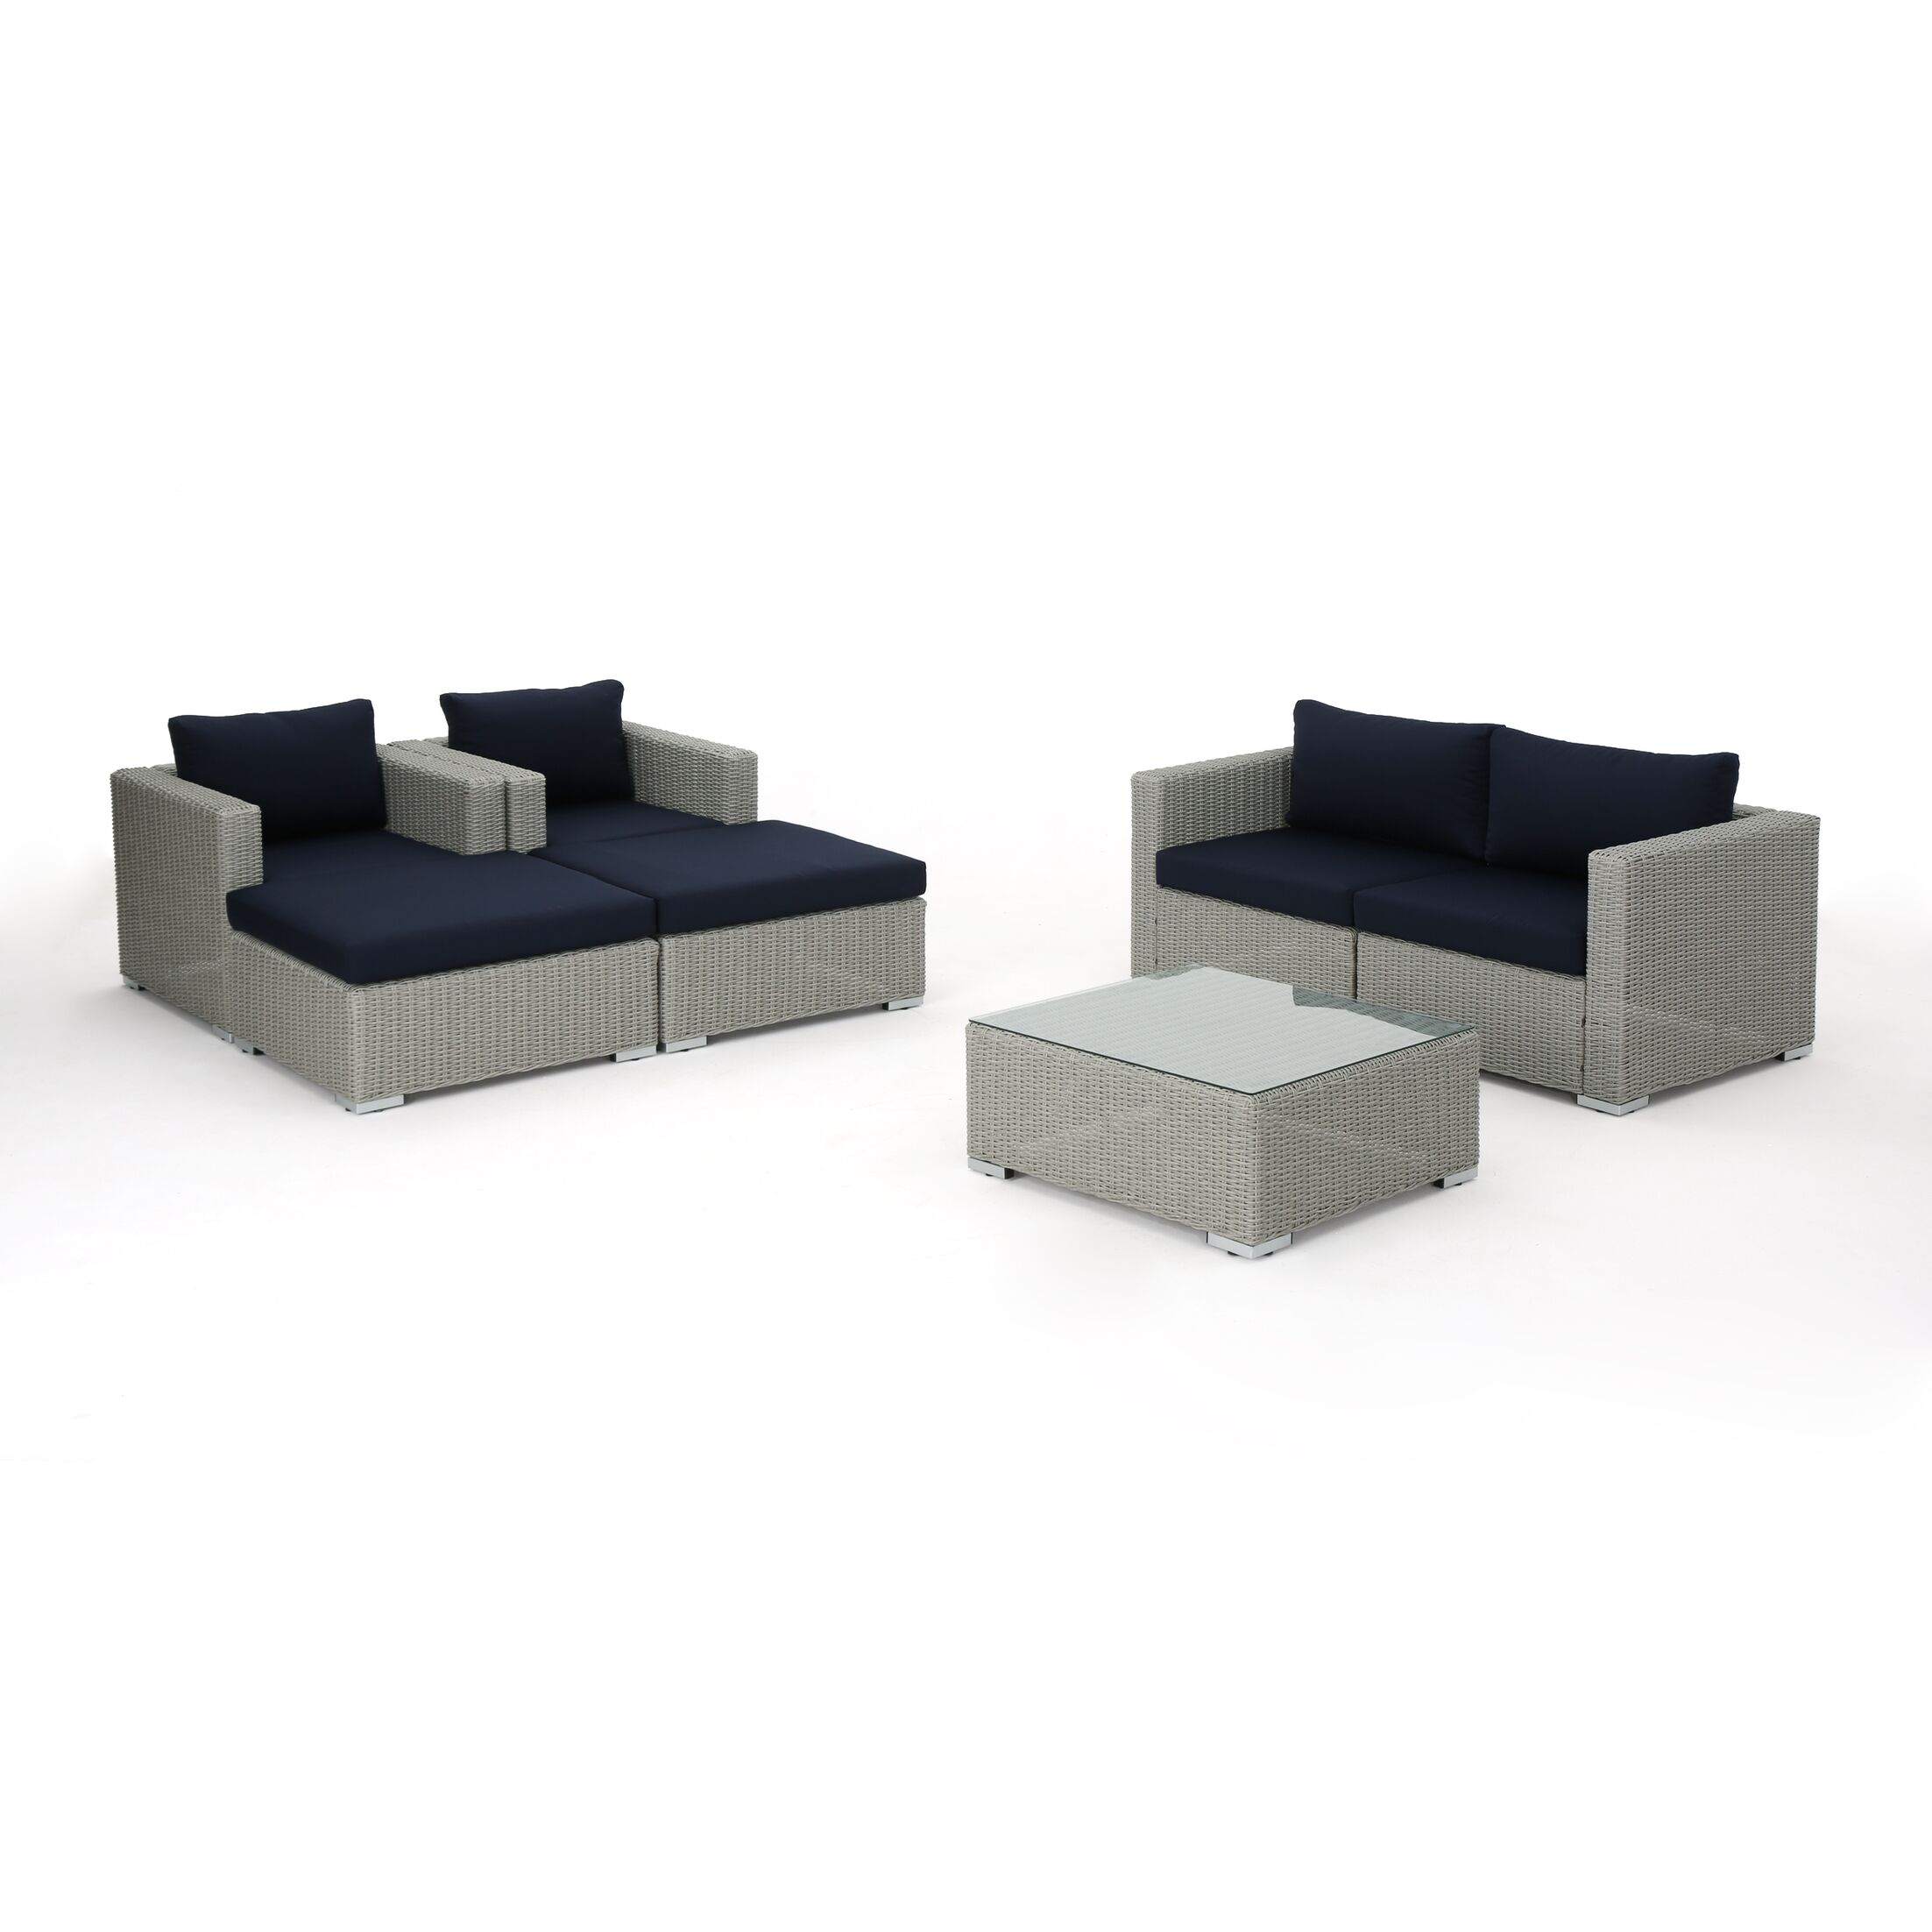 Cullum 7 Piece Sectional Set with Cushions Cushion Color: Navy Blue